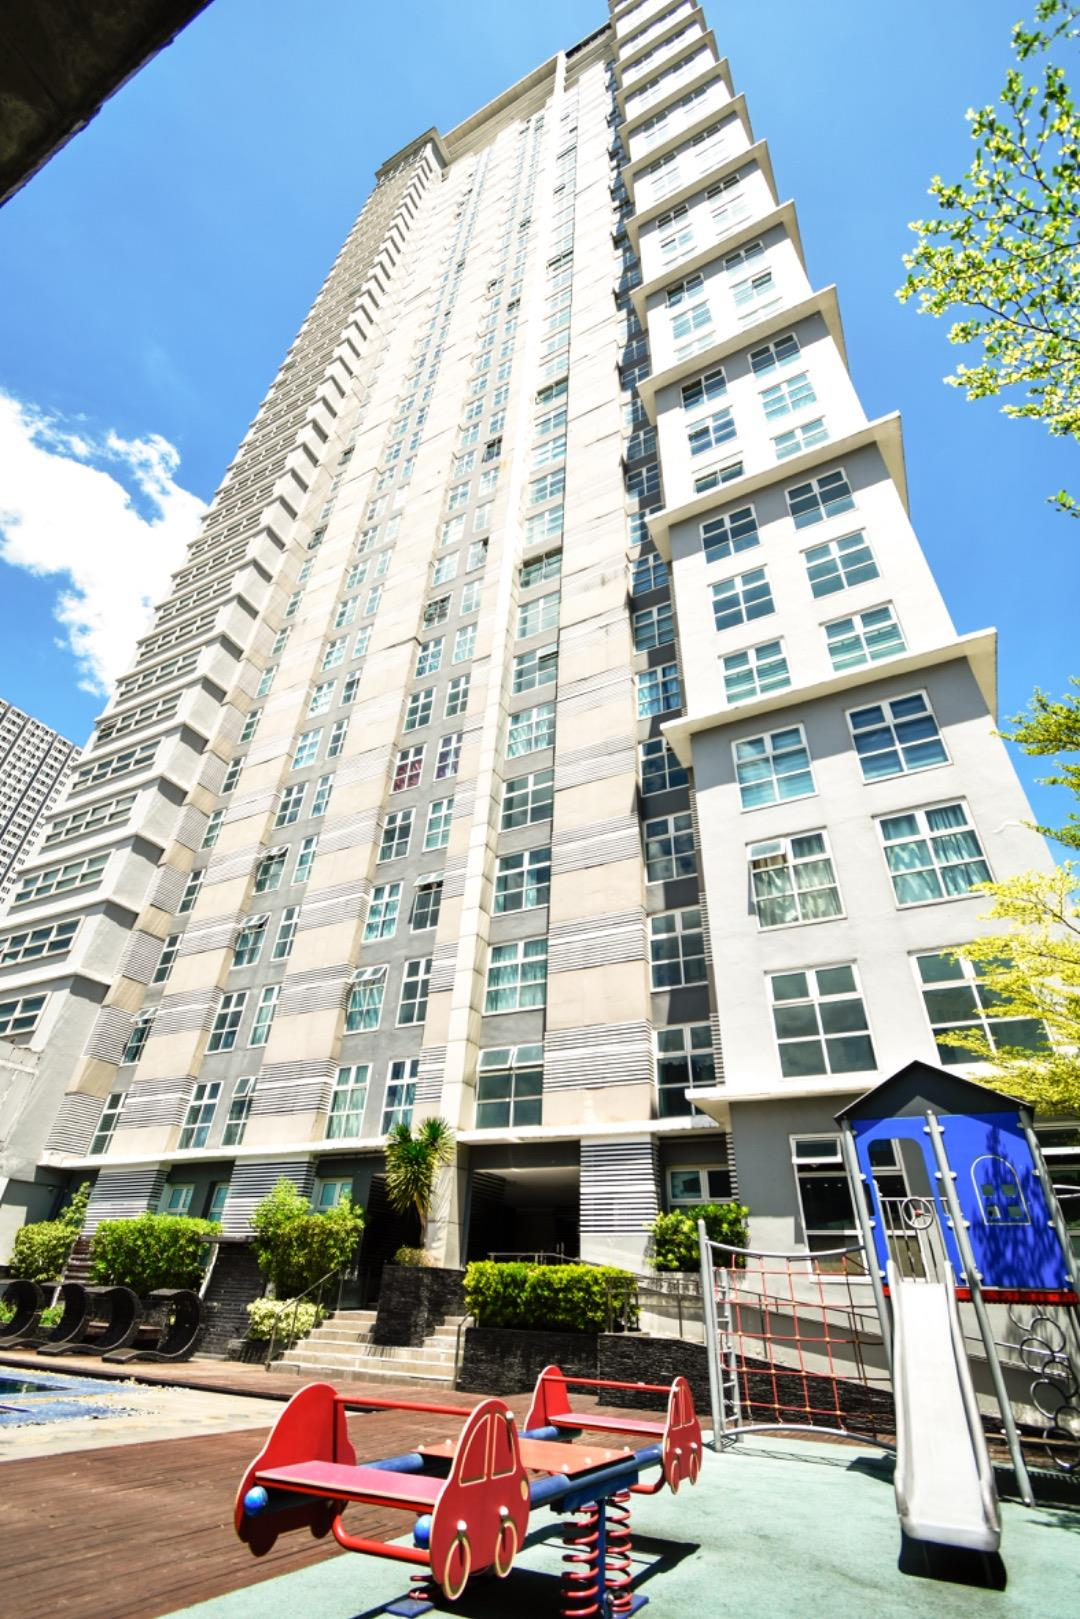 200k DOWN TO MOVE IN CONDO WIL TOWER RENT TO OWN